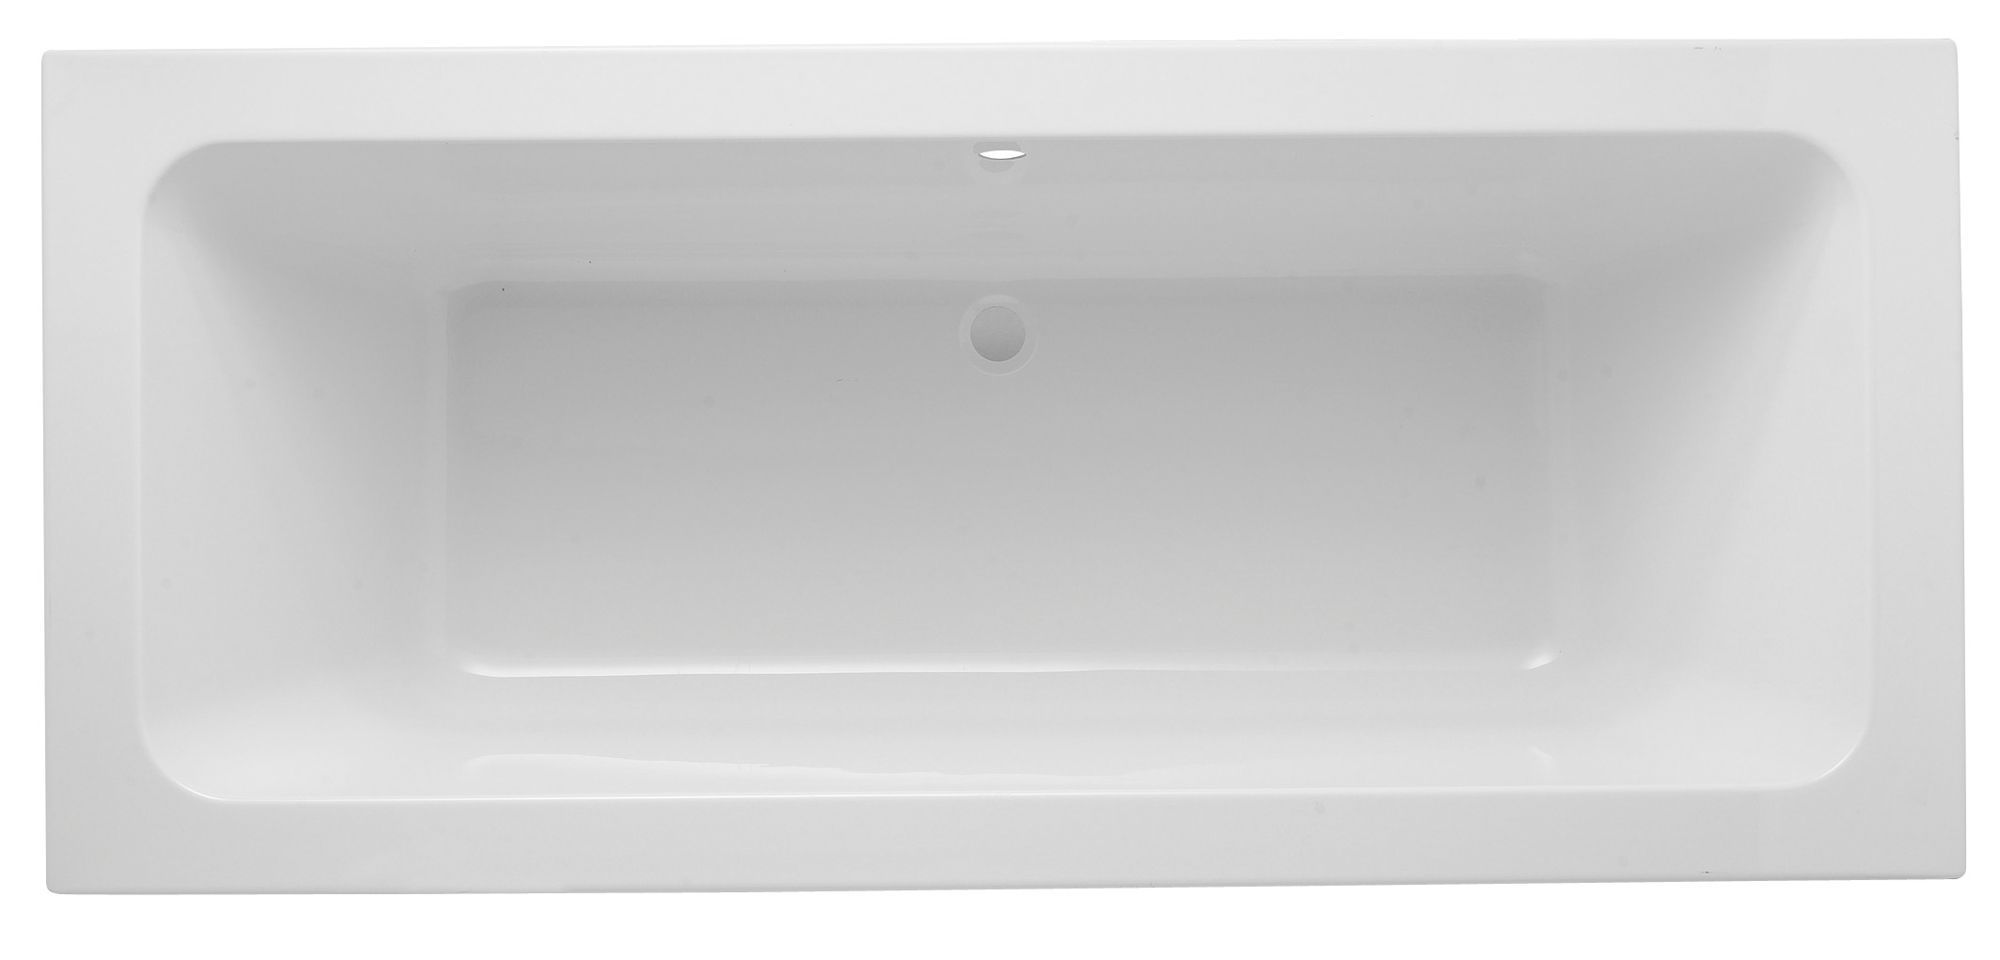 cooke lewis valerian acrylic twin ended bath l 1700mm w 750mm cooke lewis valerian acrylic twin ended bath l 1700mm w 750mm departments diy at b q